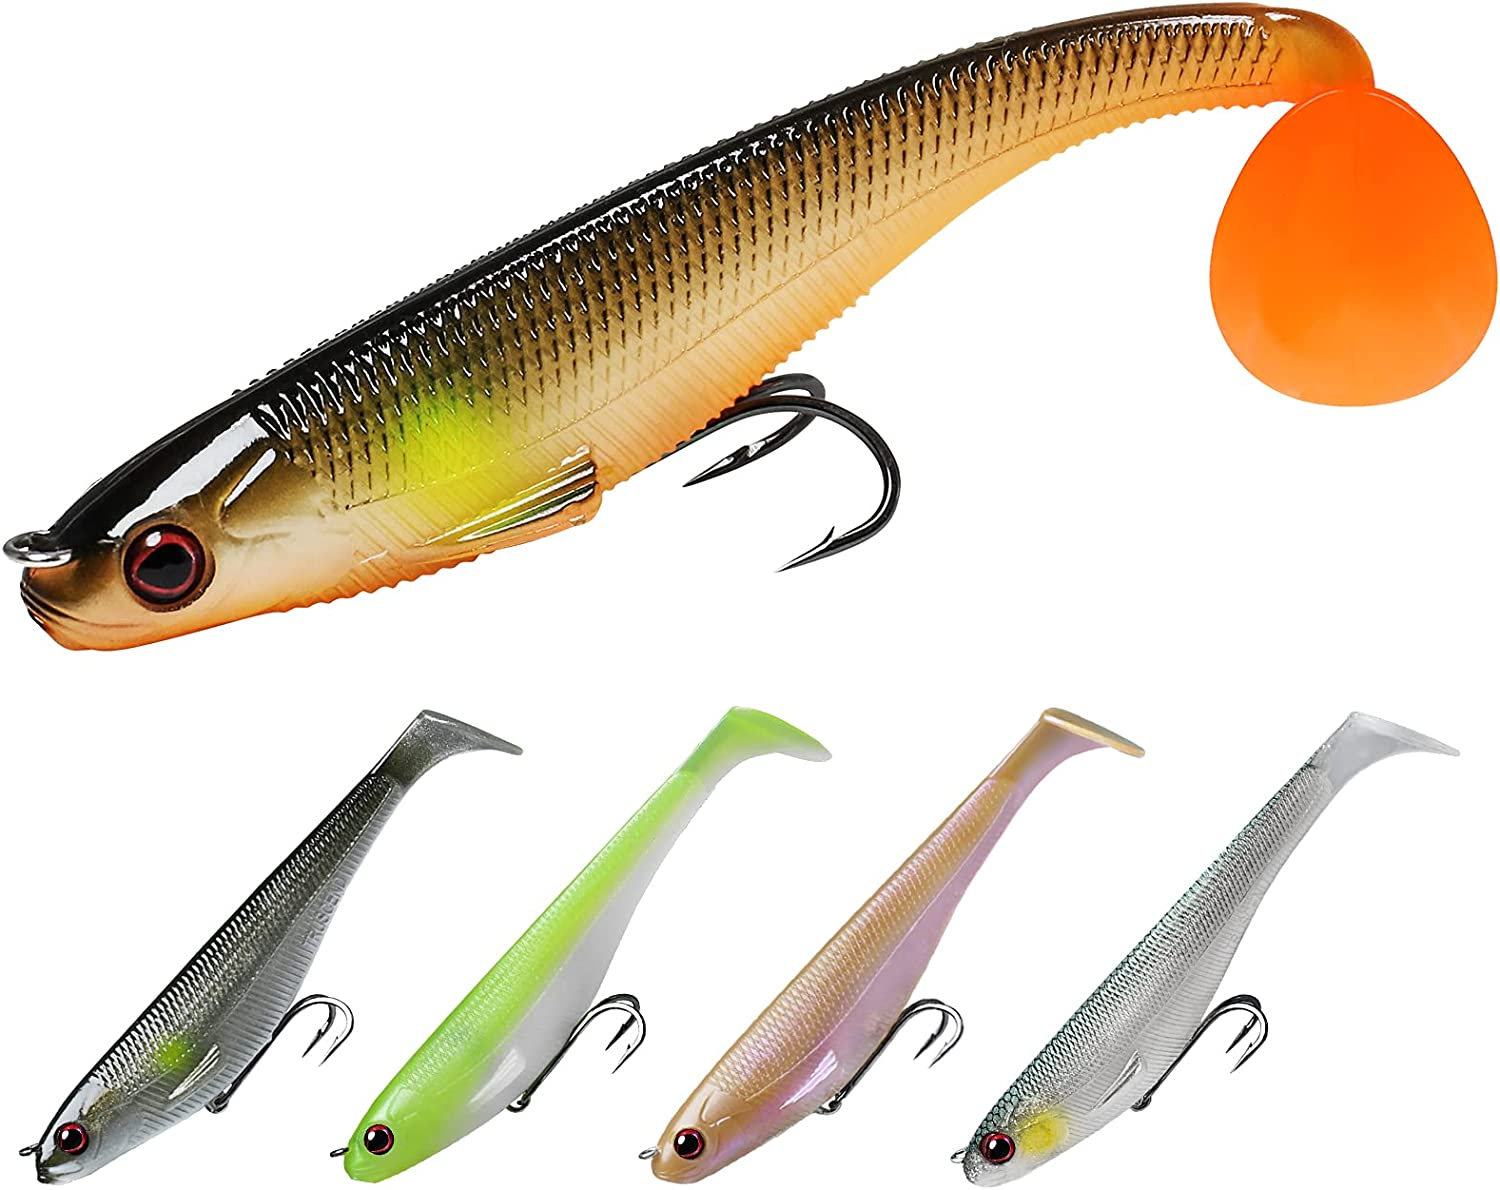 Financial sales sale TRUSCEND Fishing Lures Shad Soft Swimbaits DIY or Topics on TV Pre-Rigged F